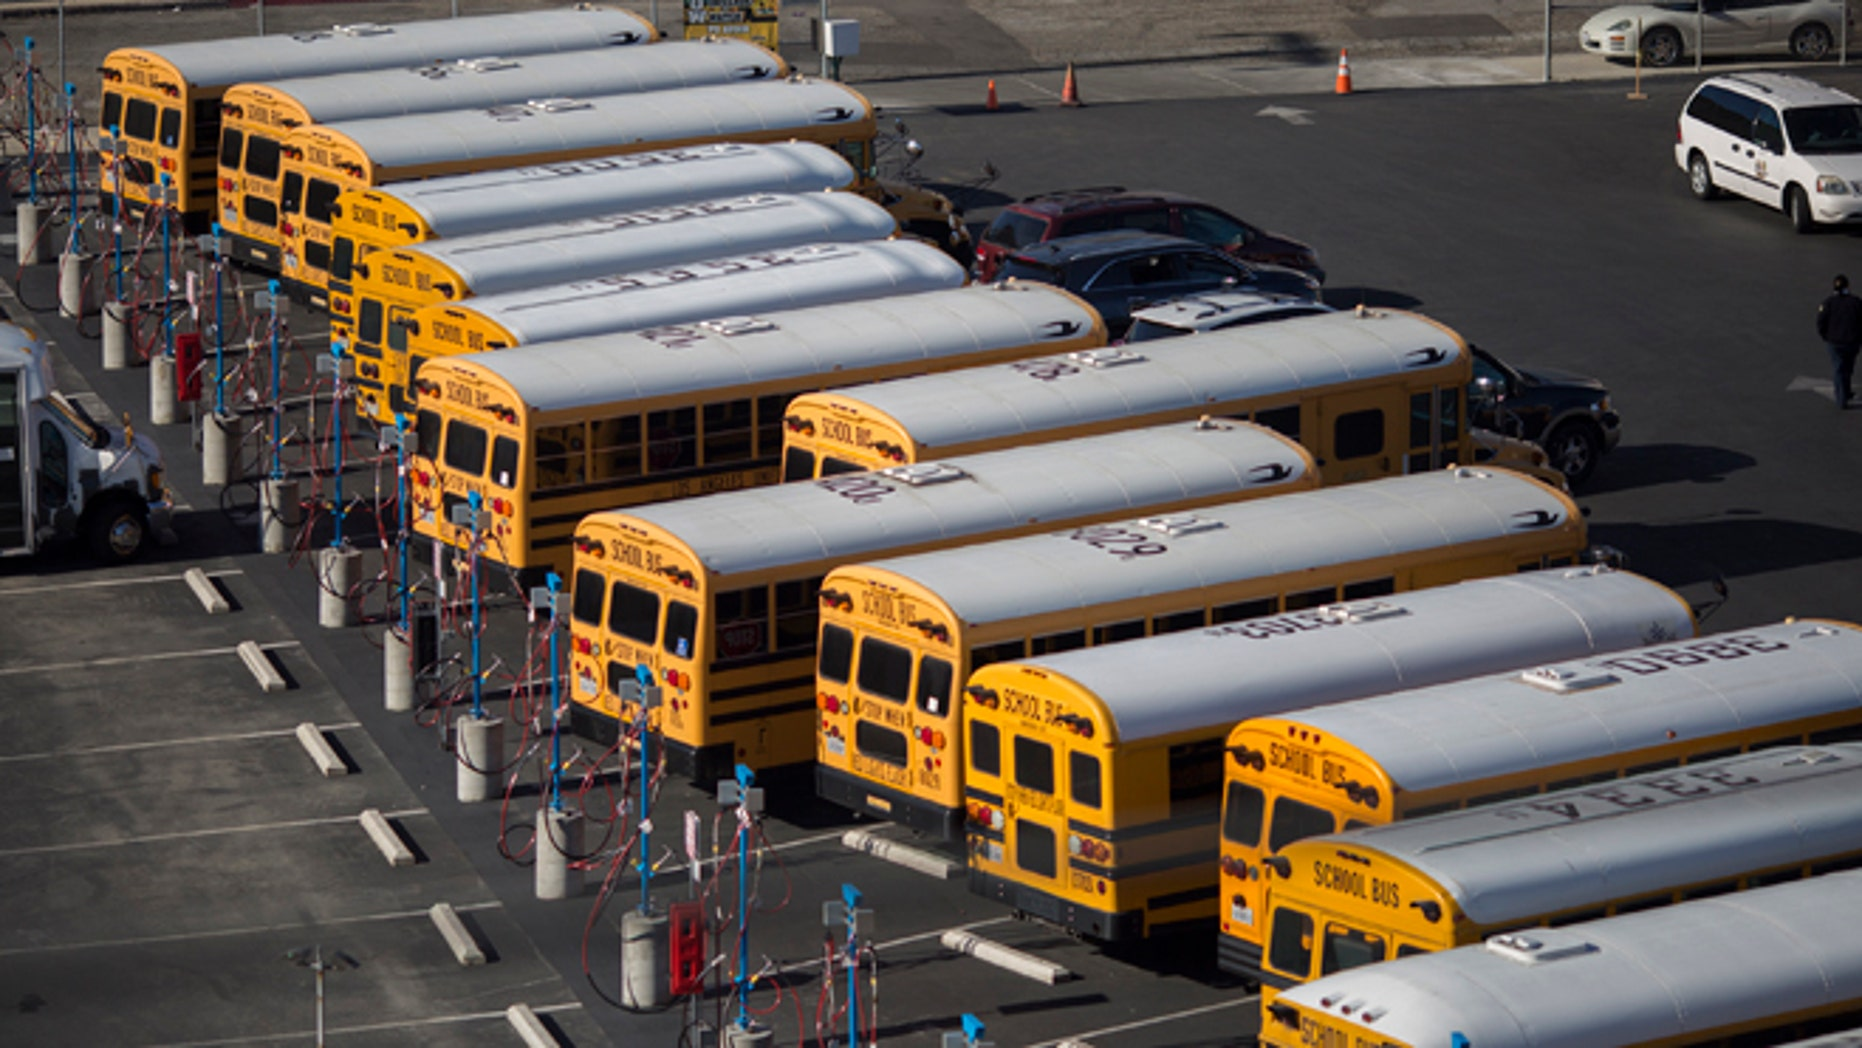 School buses stand idle as all Los Angeles city schools are shut down in reaction to a threat on December 15, 2015 in Los Angeles, California. (Photo by David McNew/Getty Images)